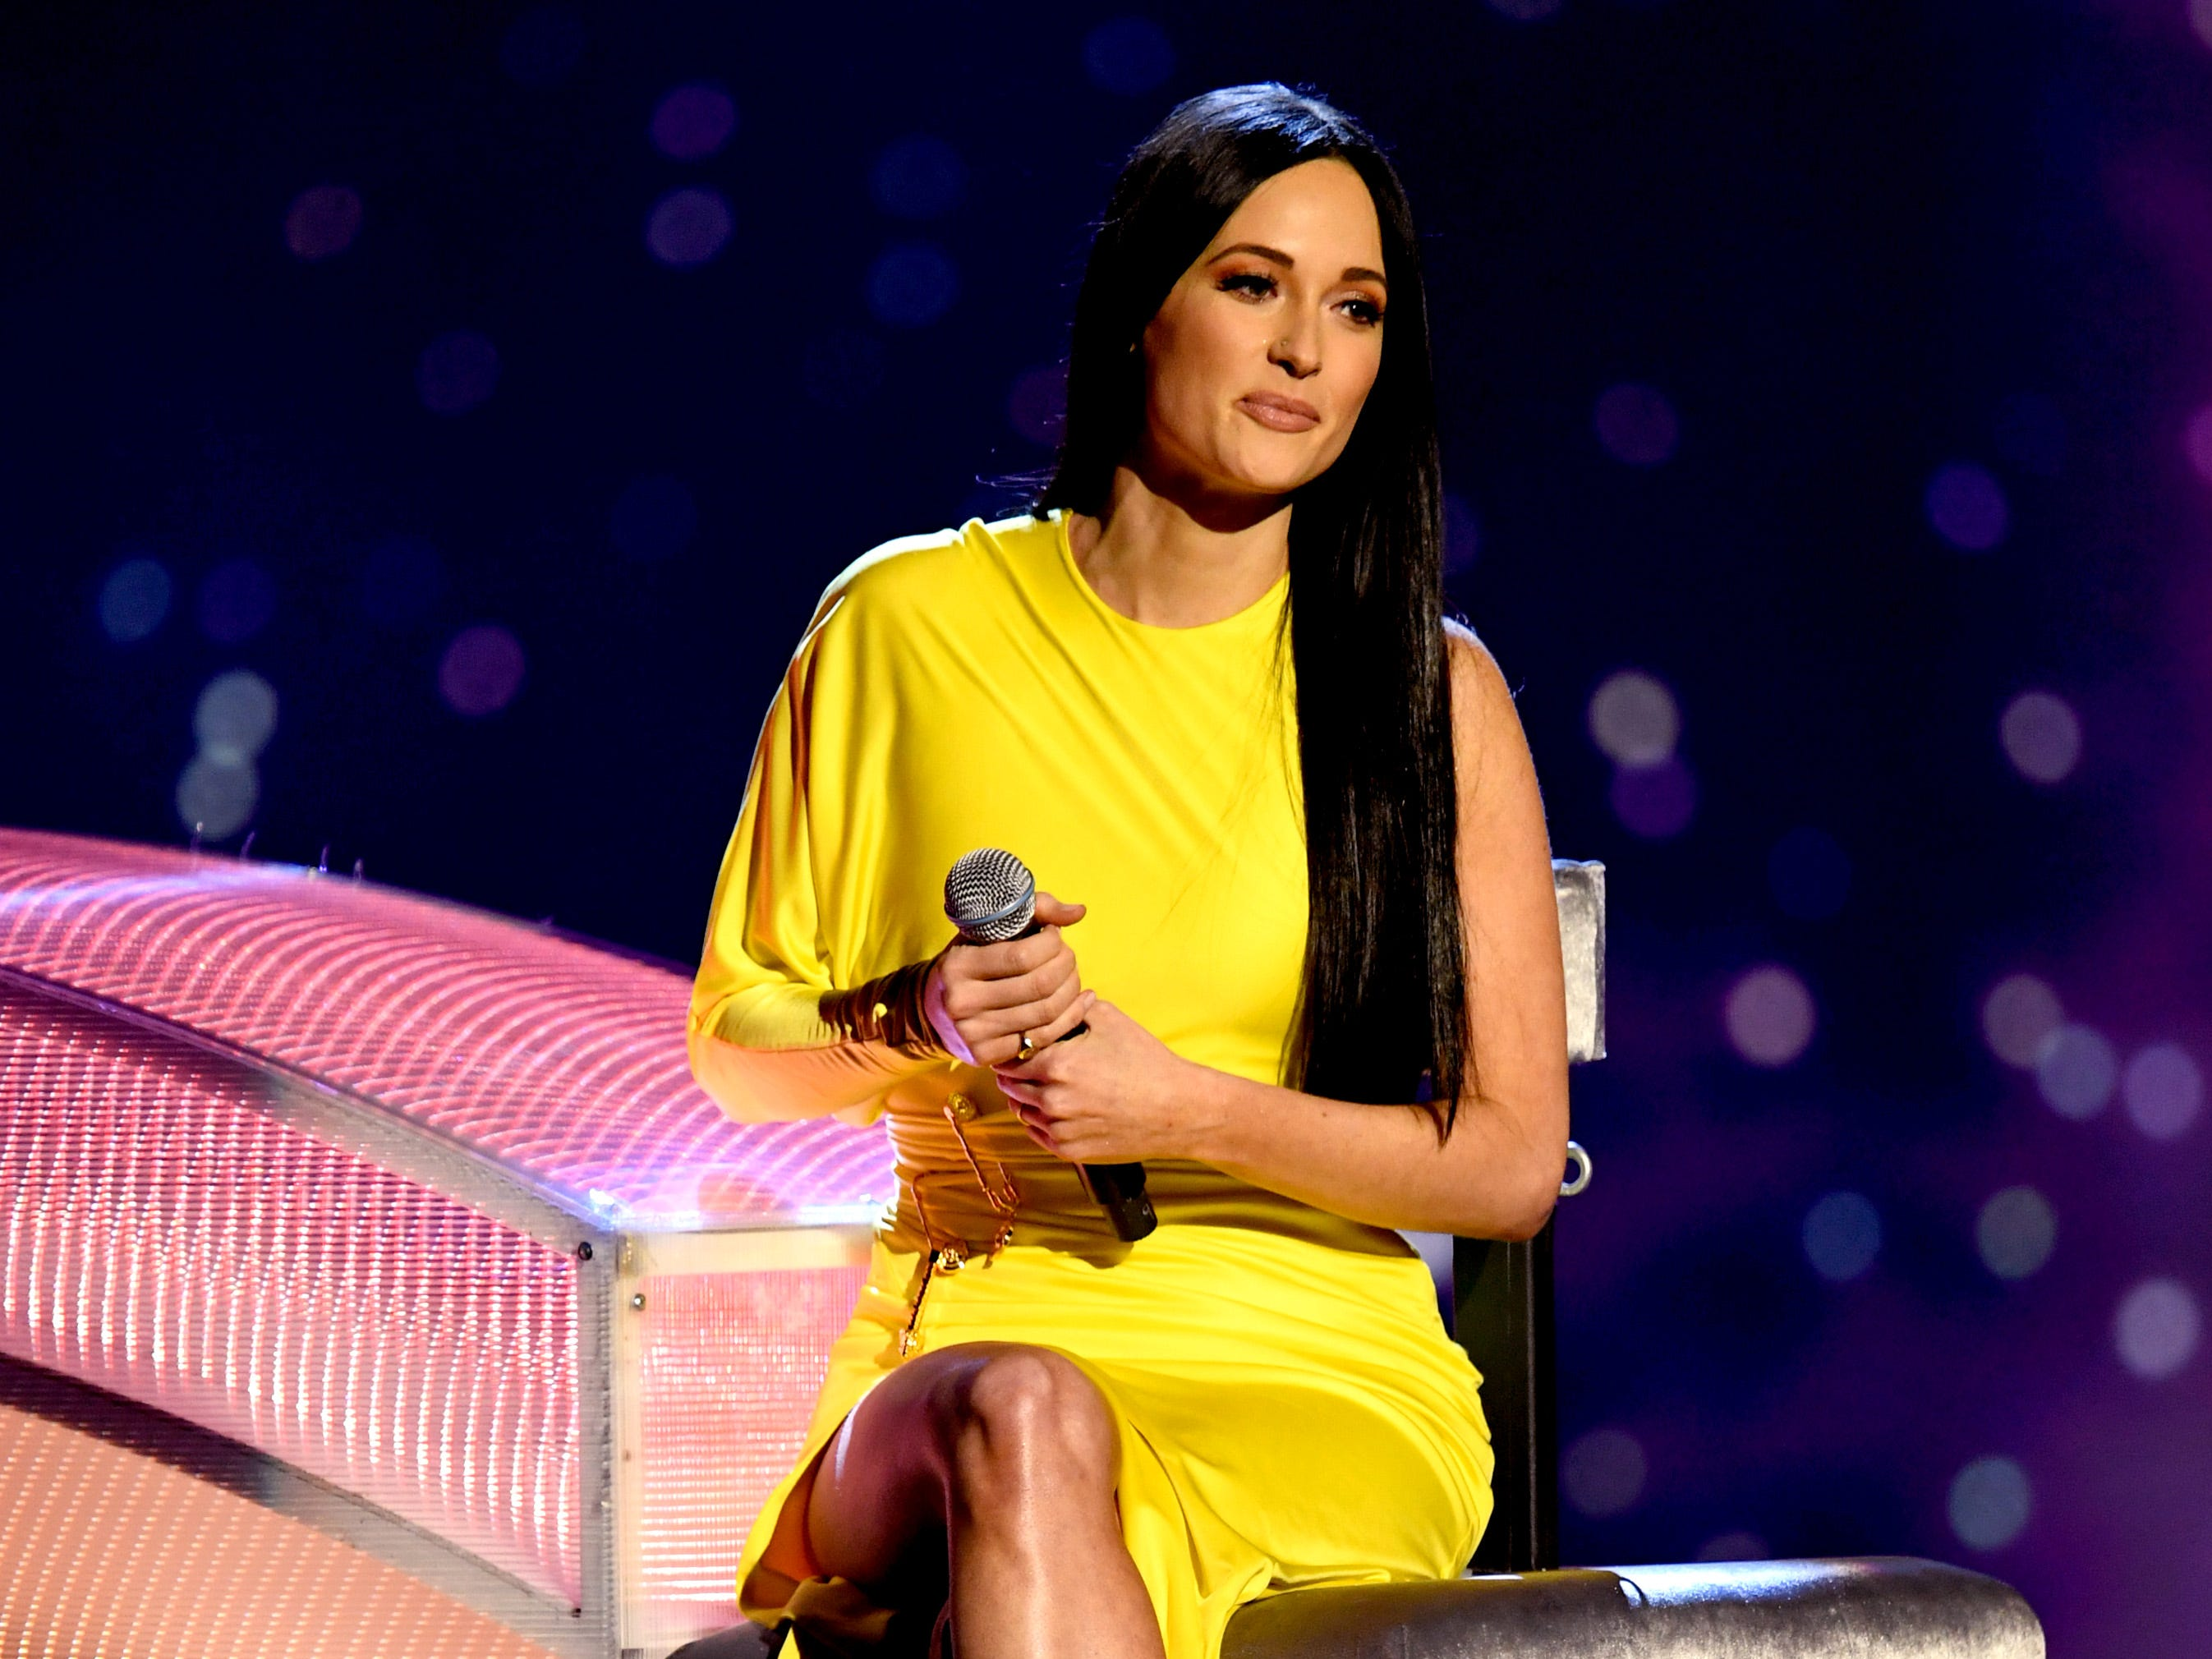 LOS ANGELES, CALIFORNIA - MARCH 14: (EDITORIAL USE ONLY. NO COMMERCIAL USE)  Kacey Musgraves performs on stage at the 2019 iHeartRadio Music Awards which broadcasted live on FOX at the Microsoft Theater on March 14, 2019 in Los Angeles, California. (Photo by Kevin Winter/Getty Images for iHeartMedia) ORG XMIT: 775306367 ORIG FILE ID: 1135862205